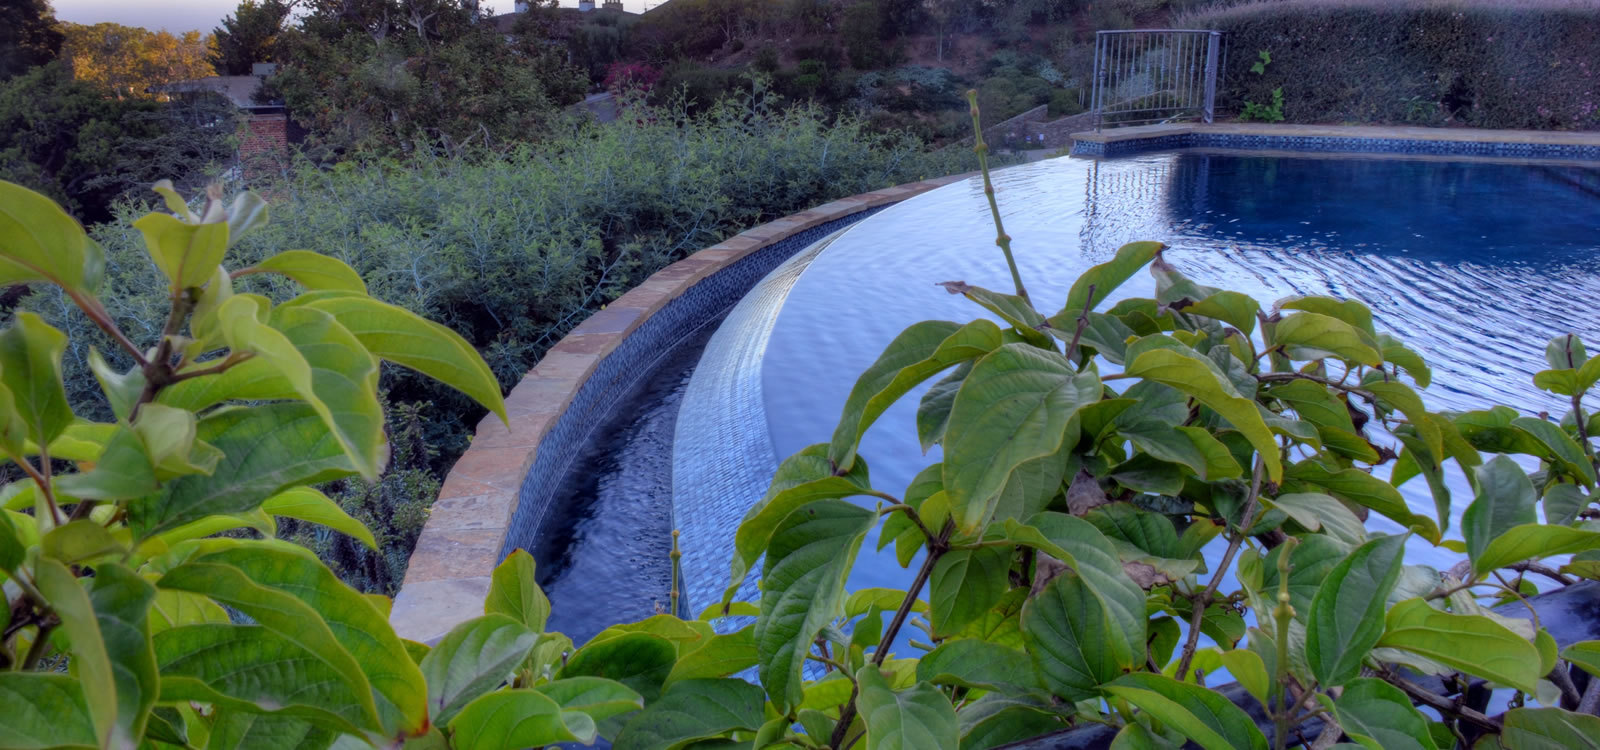 John Crystal Pools (818) 885-0004